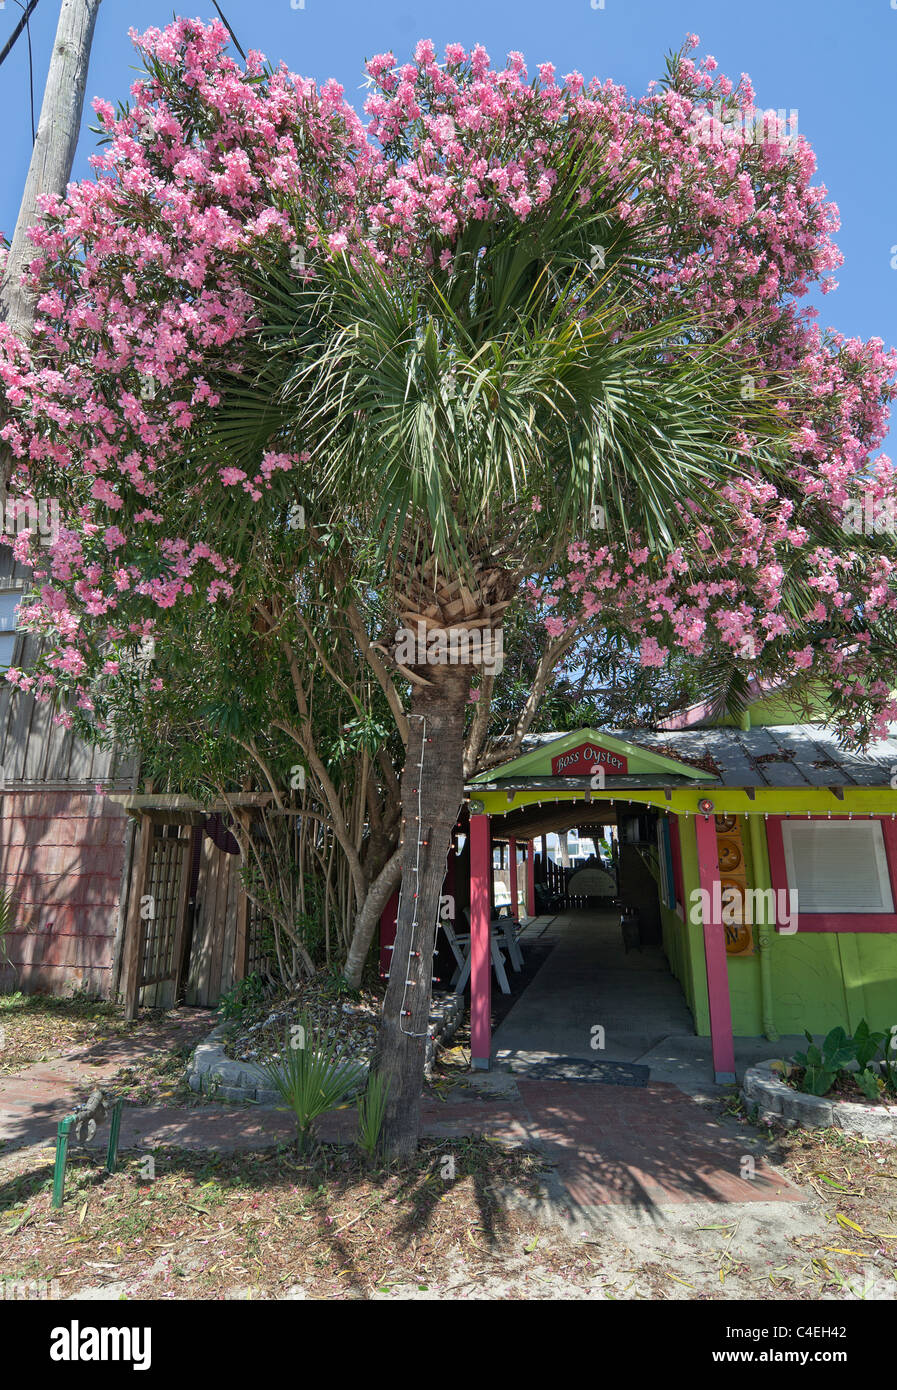 Florida Panhandle Apalachicola.  Boss Oyster restaurant entrance along the waterfront with flowering crape myrtle - Stock Image